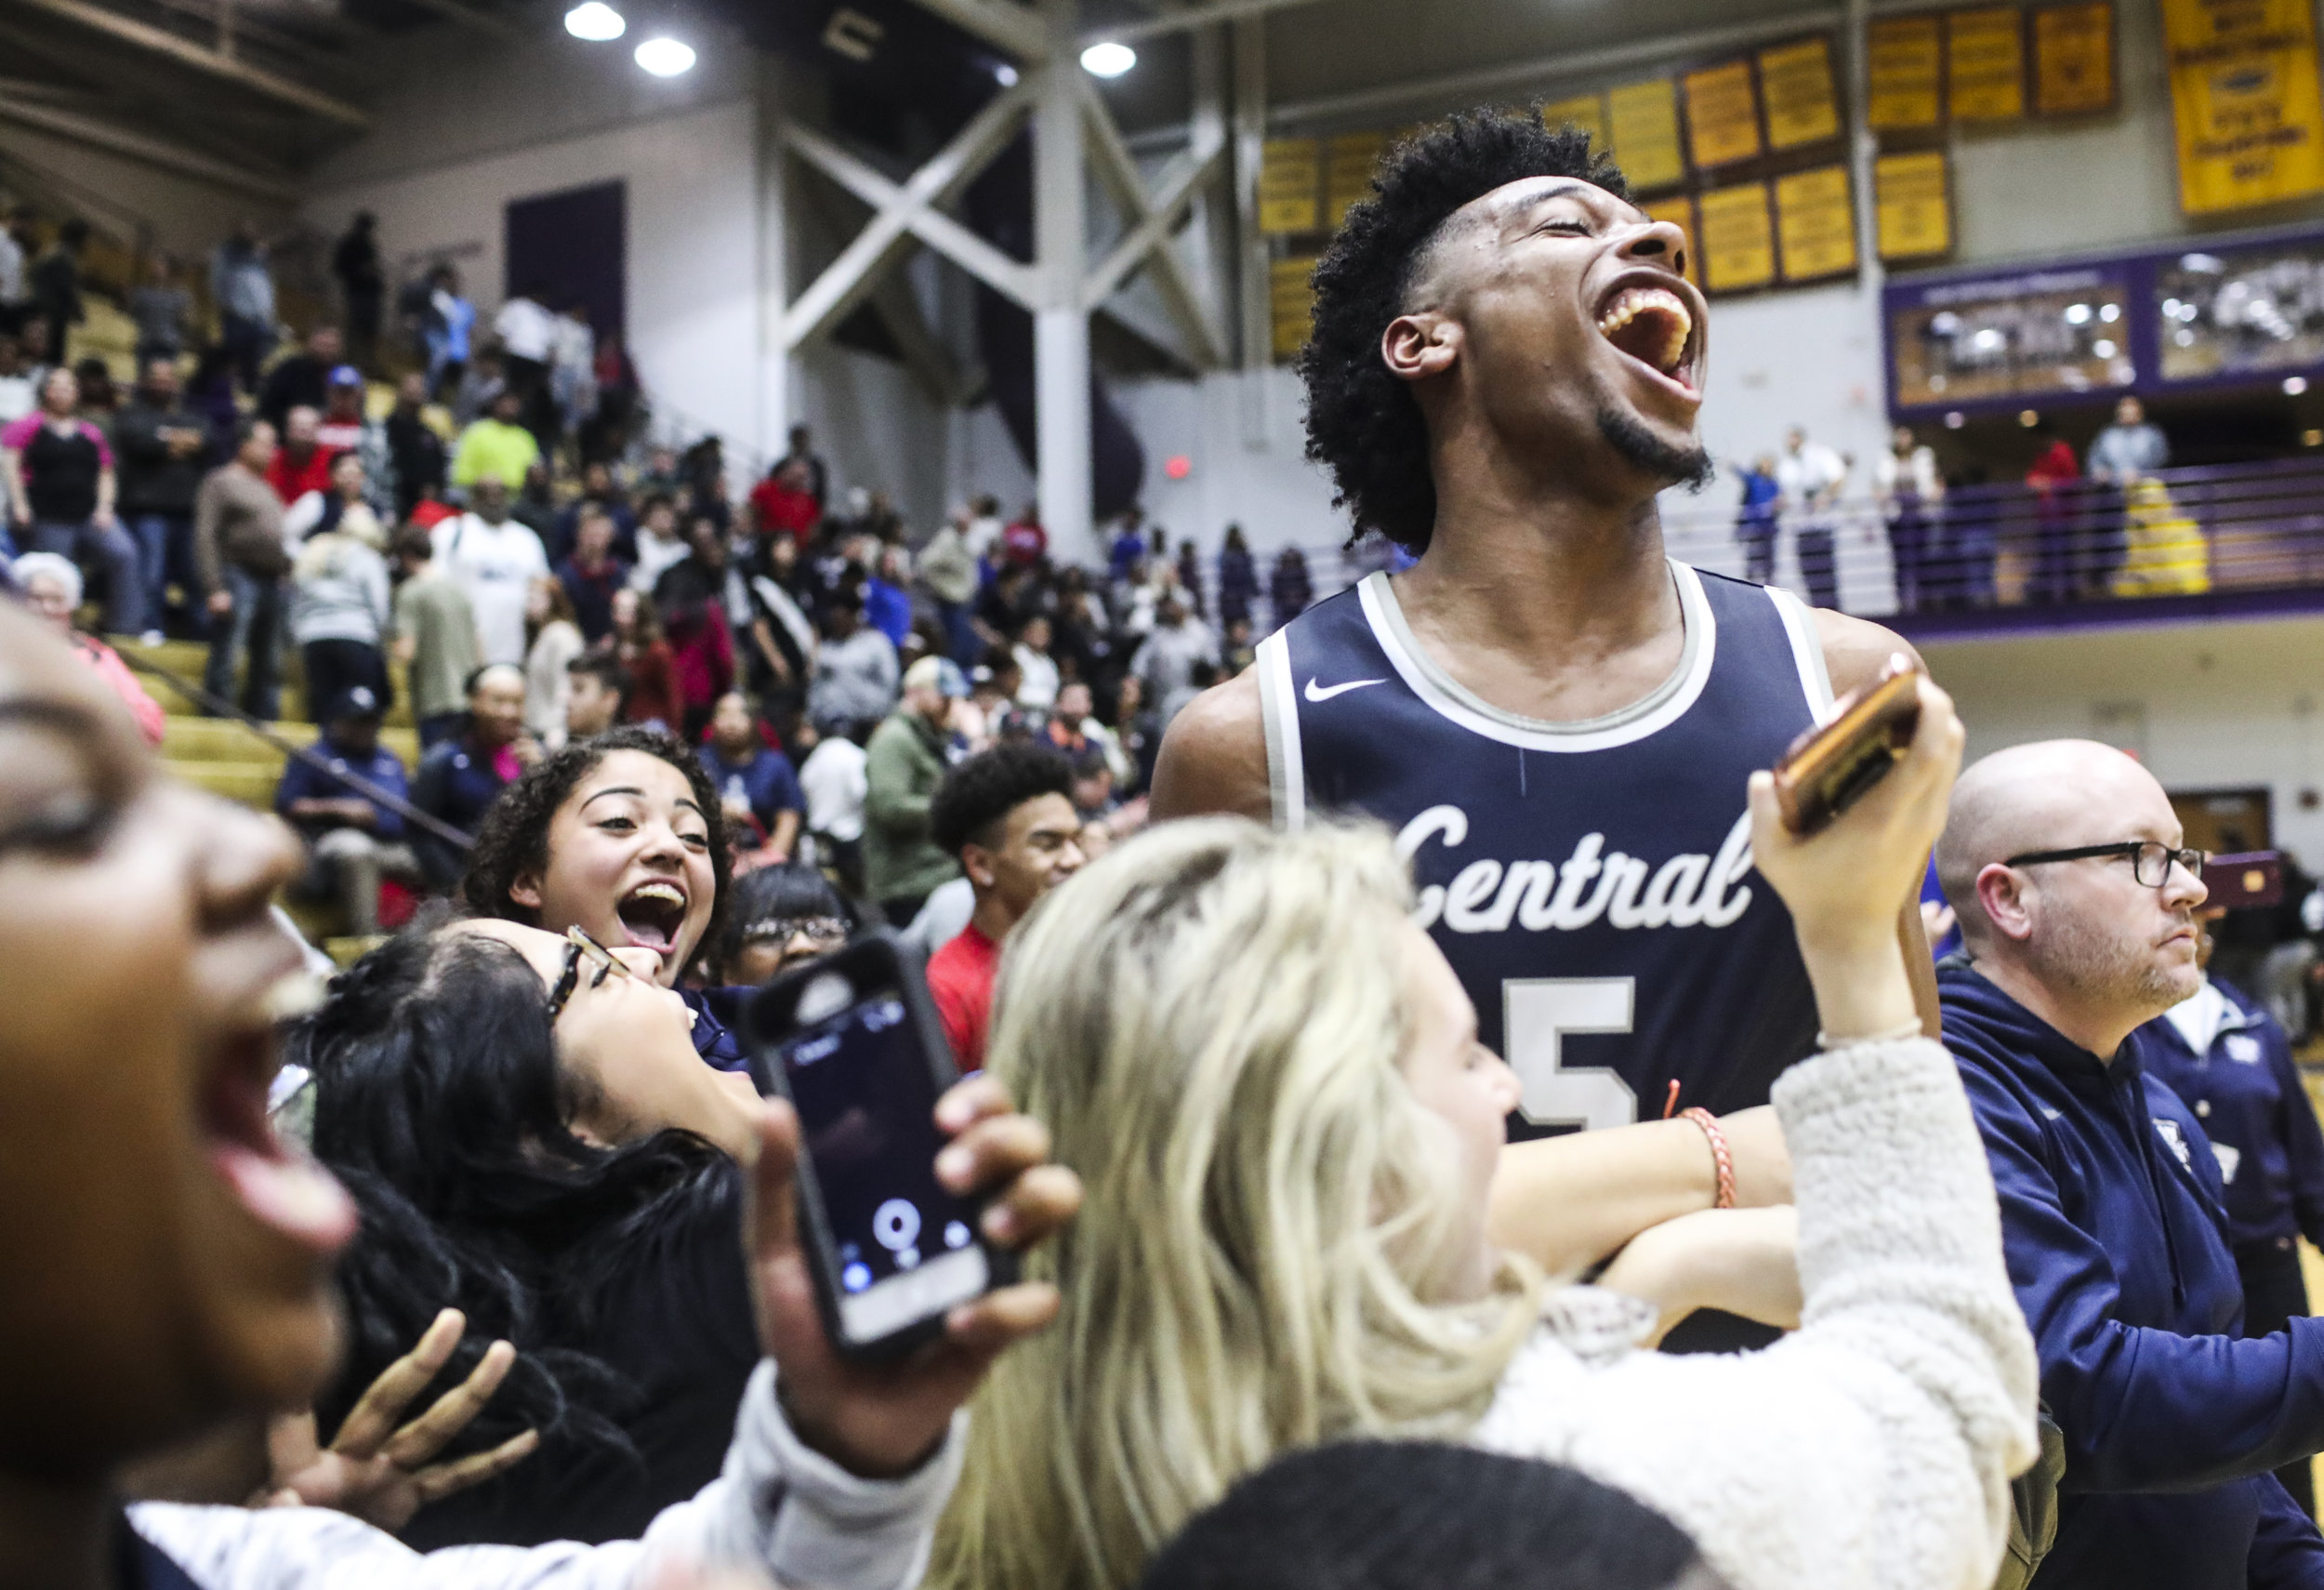 Warren Central's Skyelar Potter celebrates with fans after Warren Central's 66-56 win over Bowling Green on Thursday, January 11, 2018, at Bowling Green.